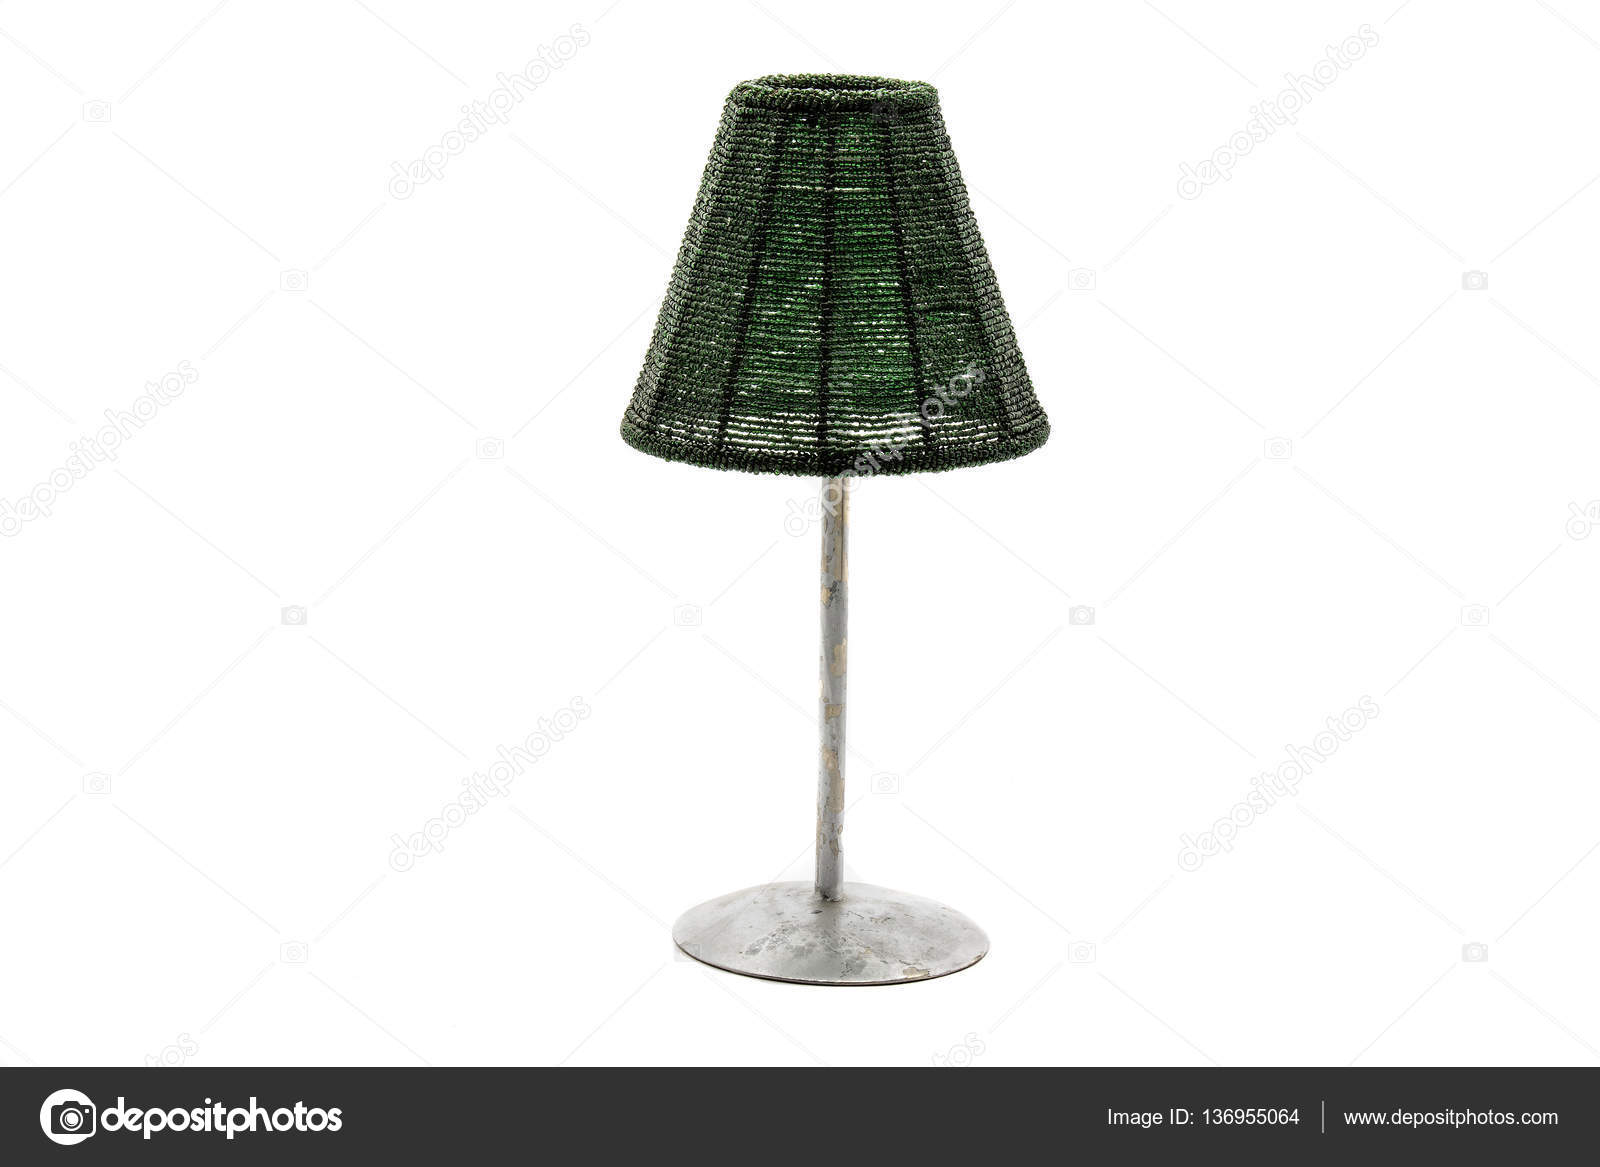 Home lighting vintage table lamp isolated on white background ...